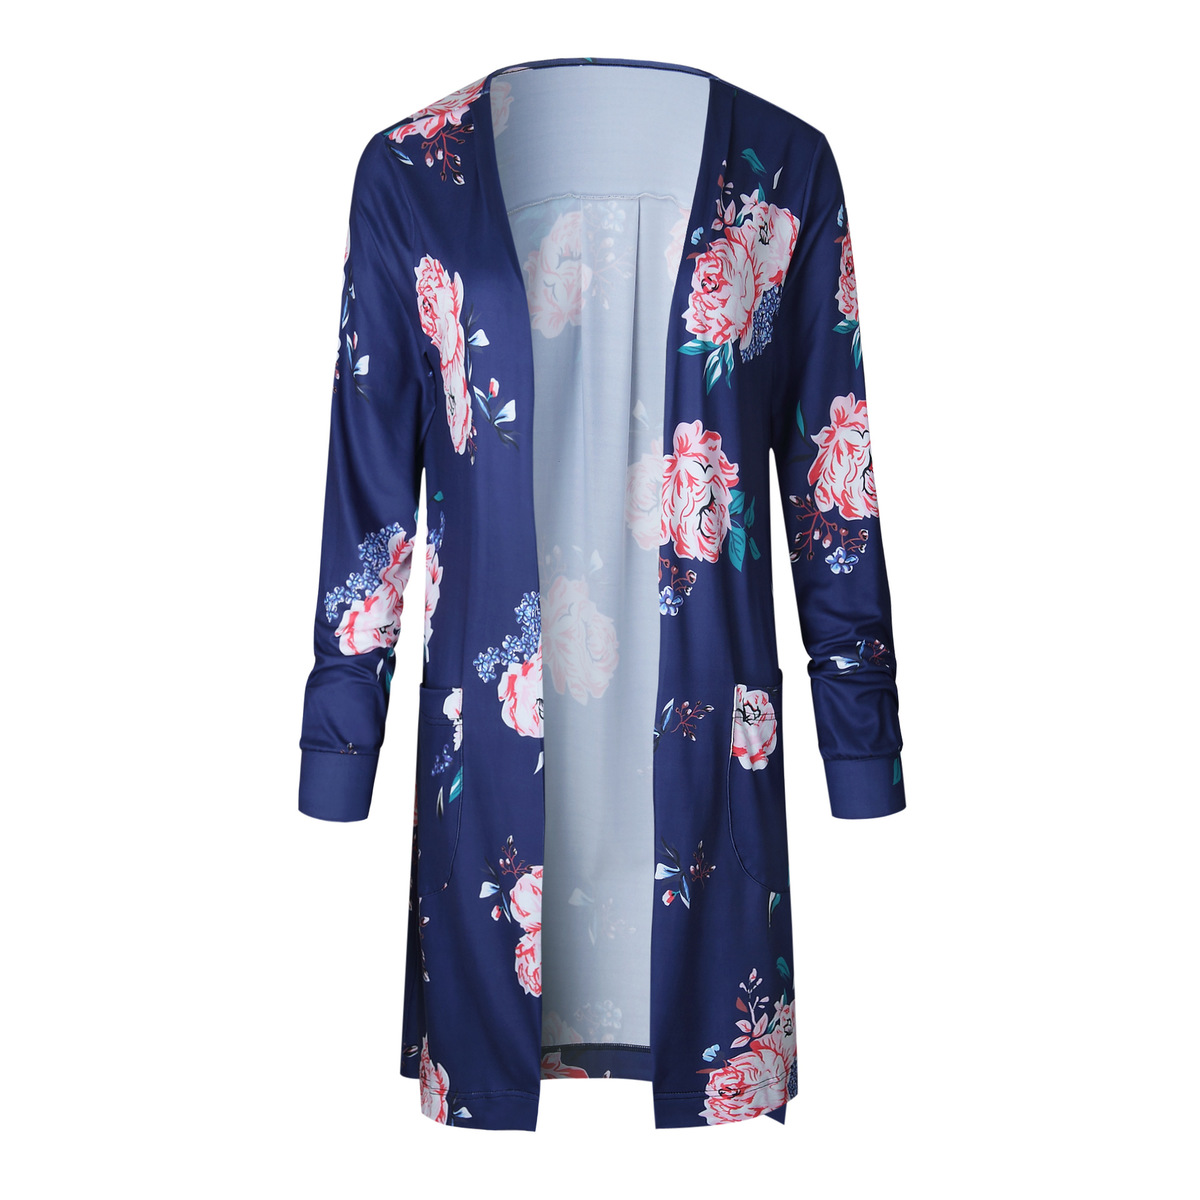 Plus Size Long Sleeve Cardigan Floral Print Thin Coat 2018 Autumn Open Stitch Women Sweaters and Cardigans Pockets Long CoatsY1882402